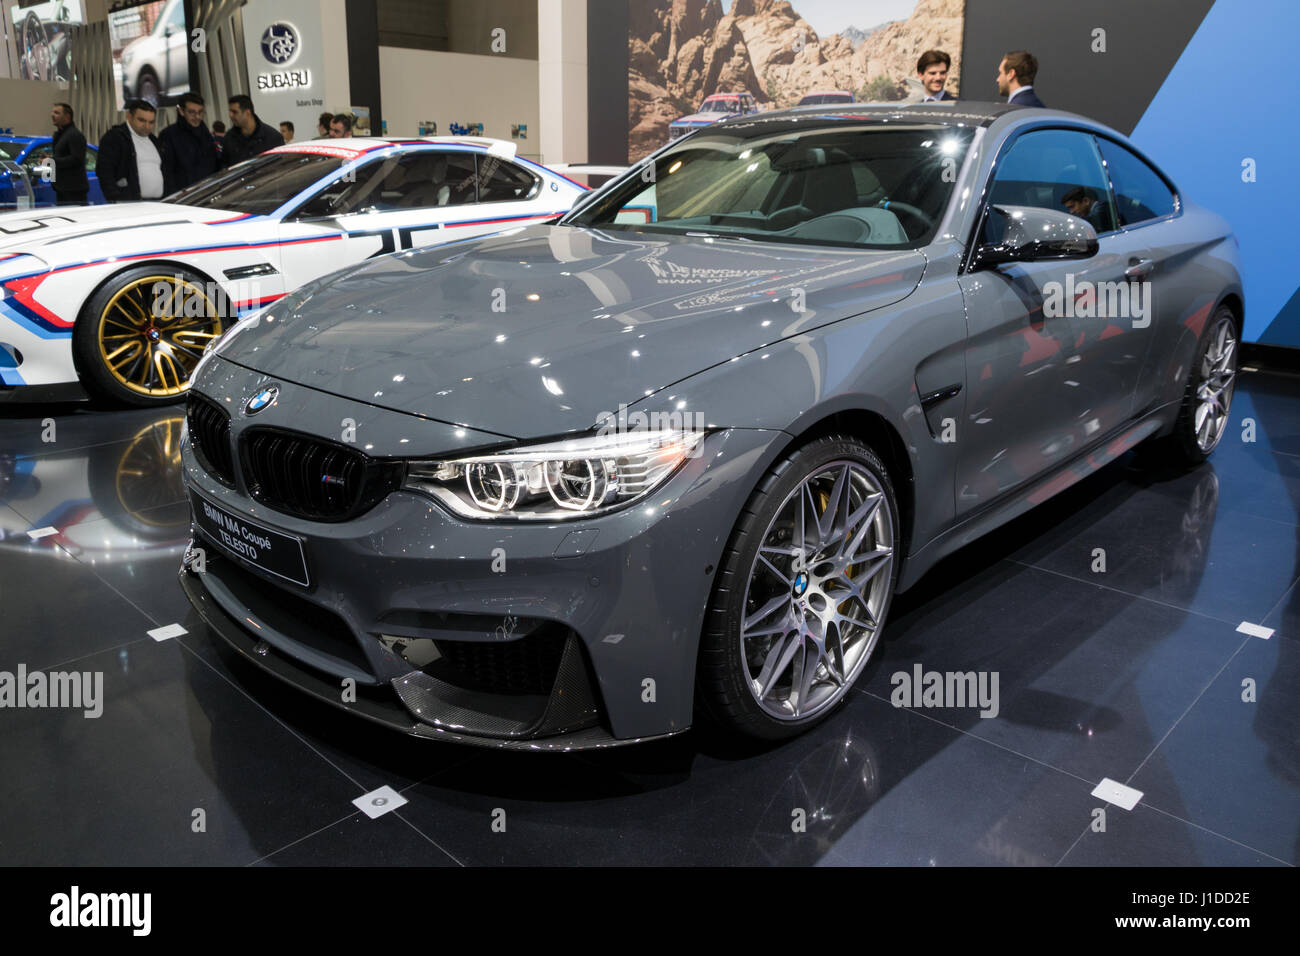 Brussels Jan 19 2017 Bmw M4 Coupe Telesto Car At The Brussels